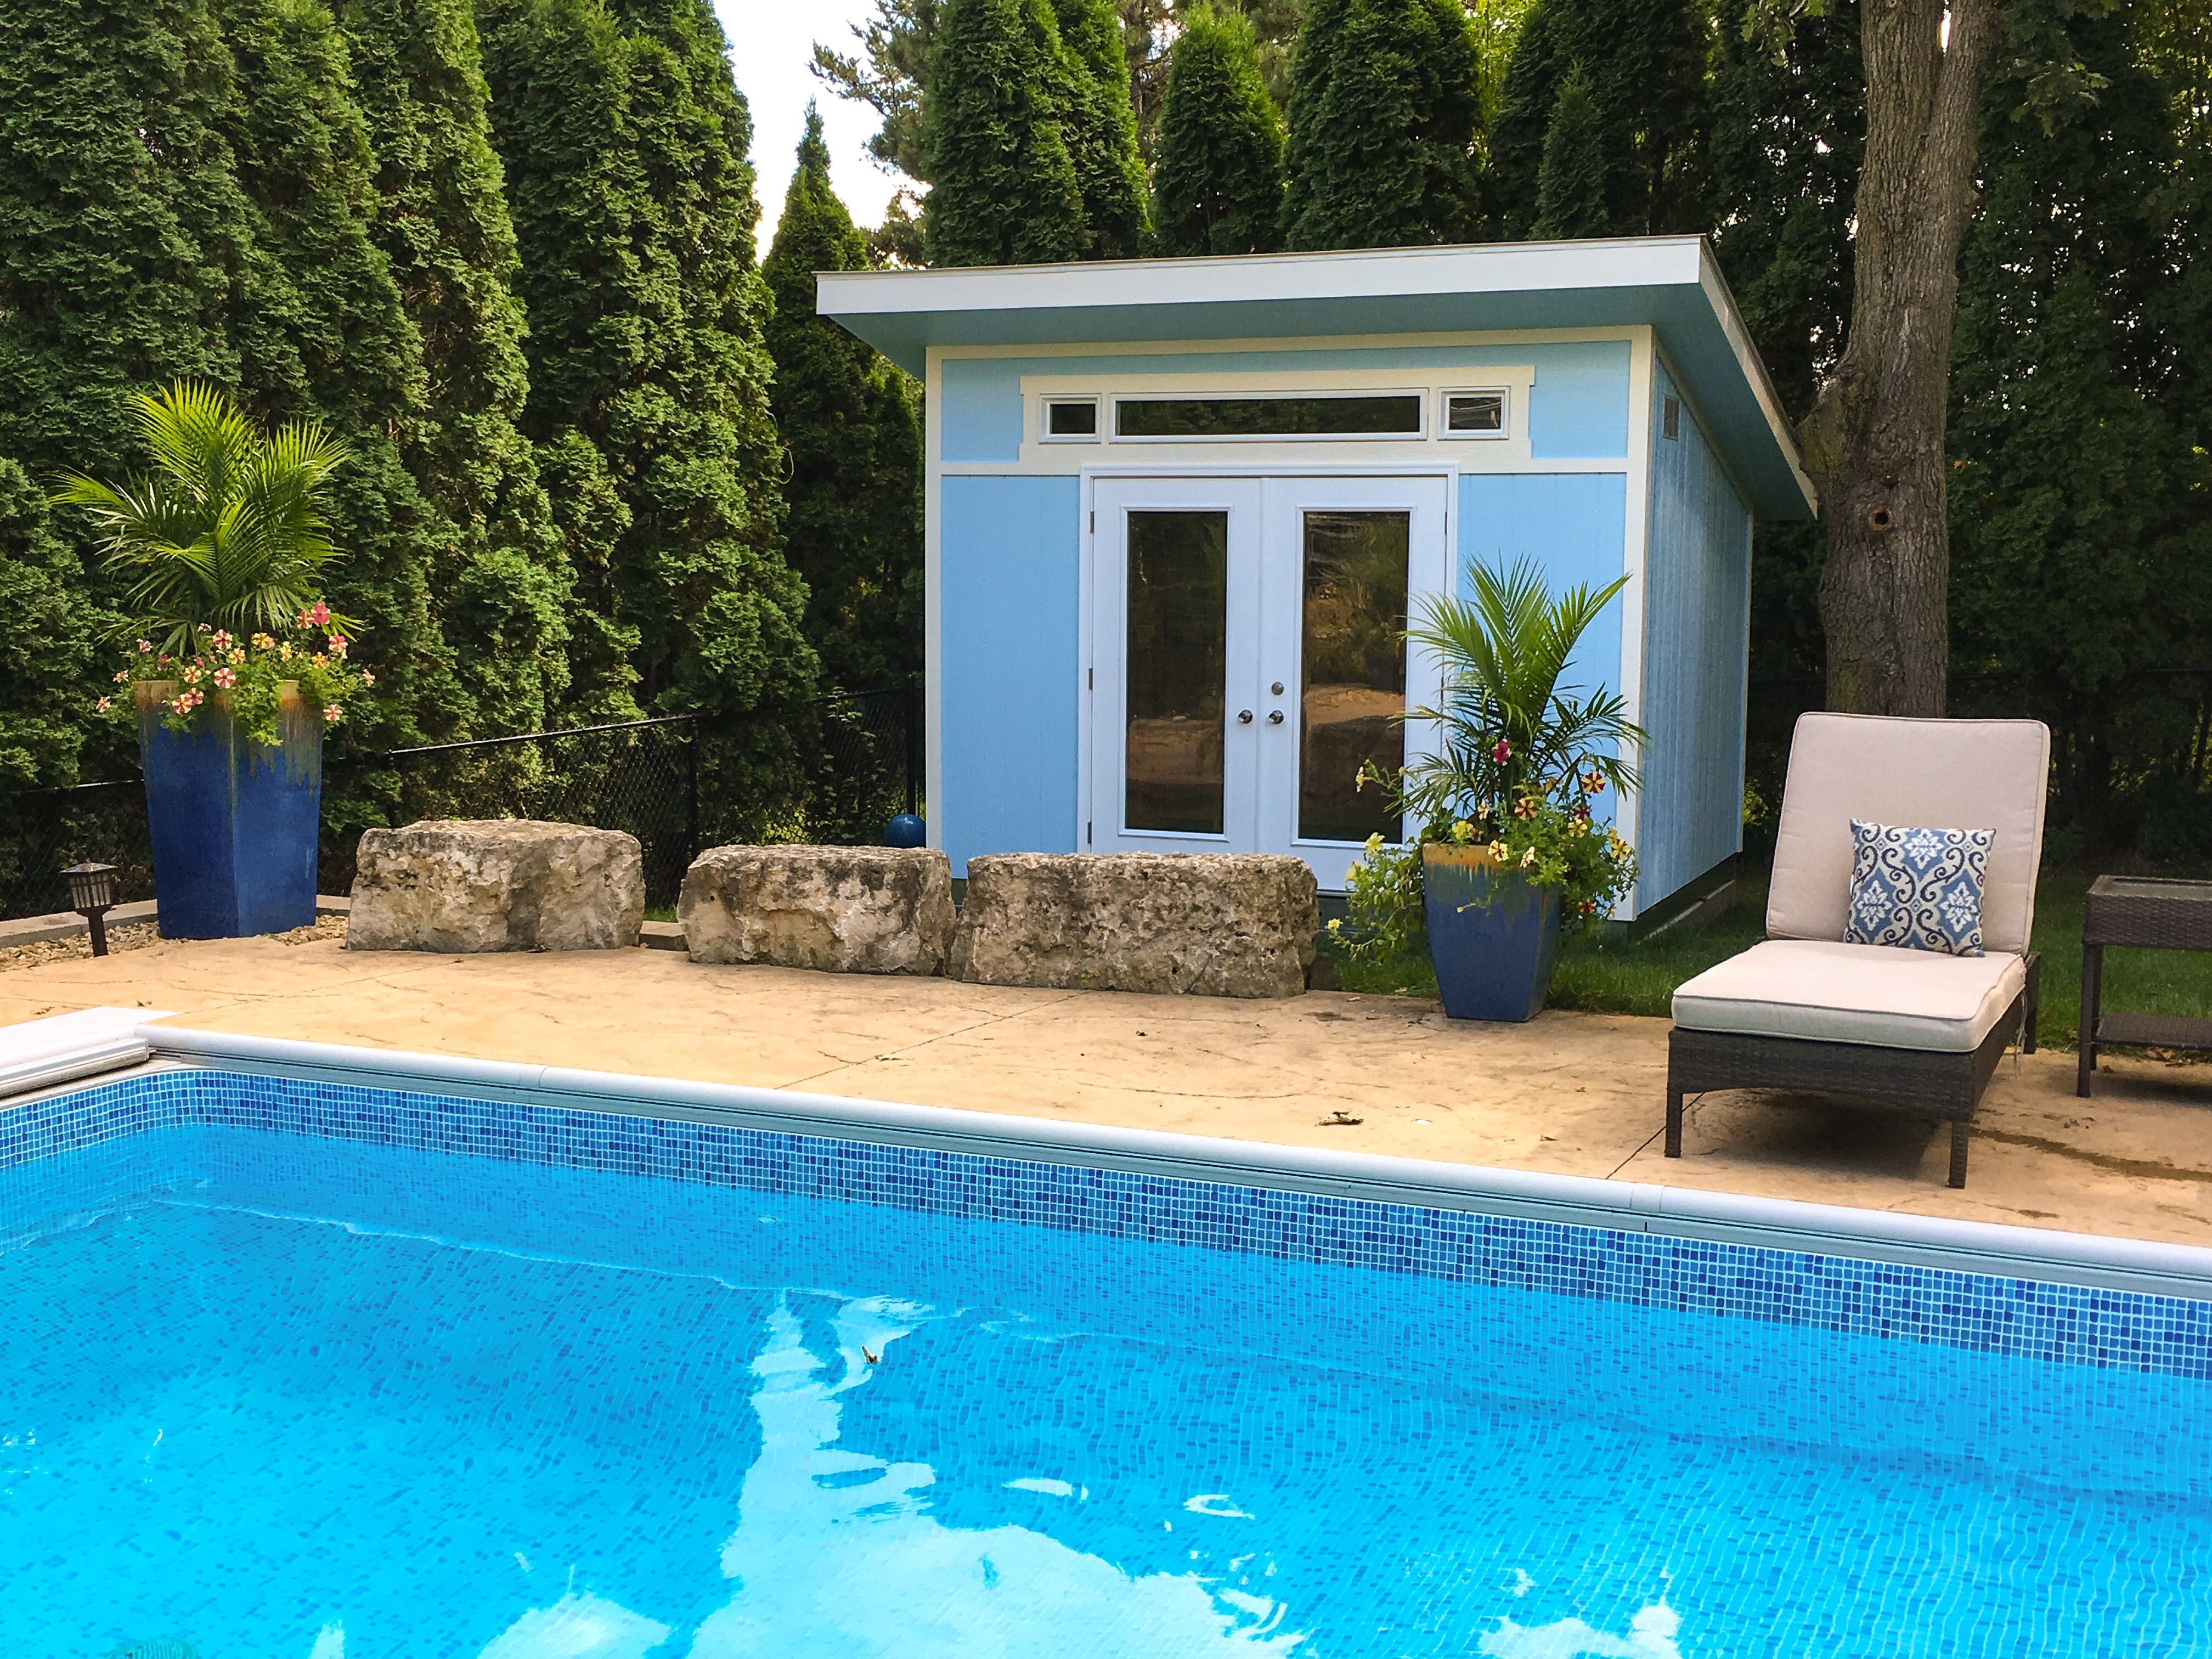 Spending your days poolside? Add a Tuff Shed Studio for your